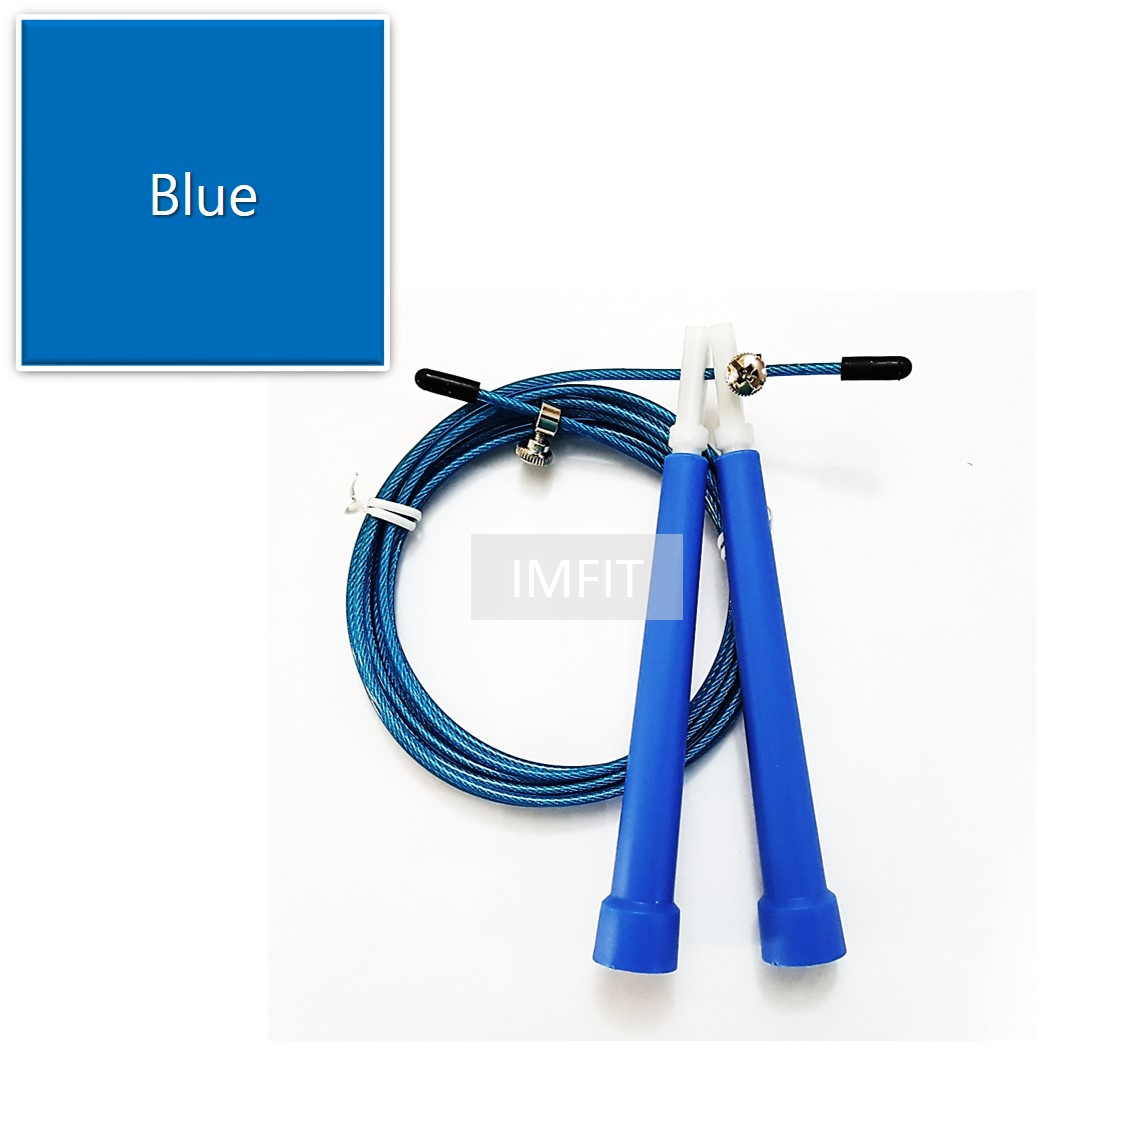 IMFIT Exercise Skipping Jump Rope